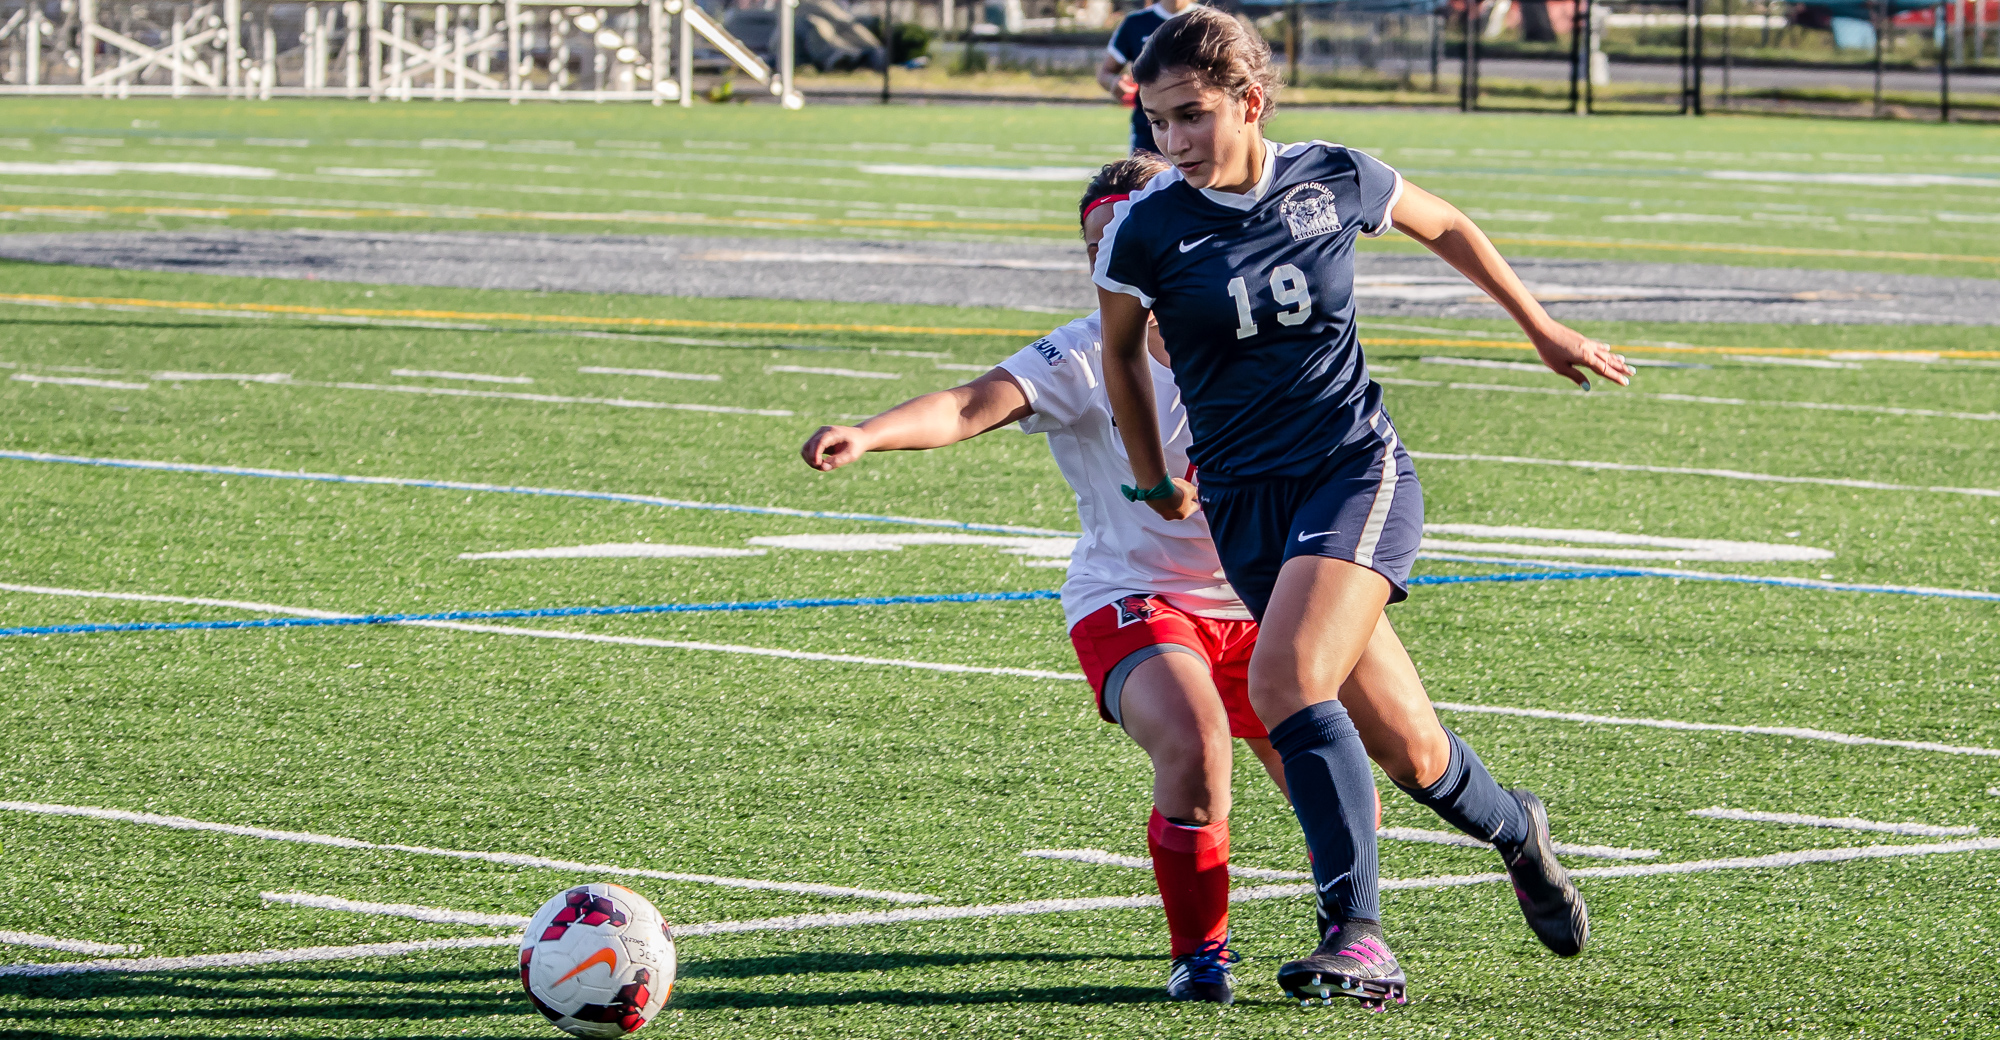 Sequeira and Molic Nab Hat Tricks as Women's Soccer Downs Valley Forge for Third Straight Win